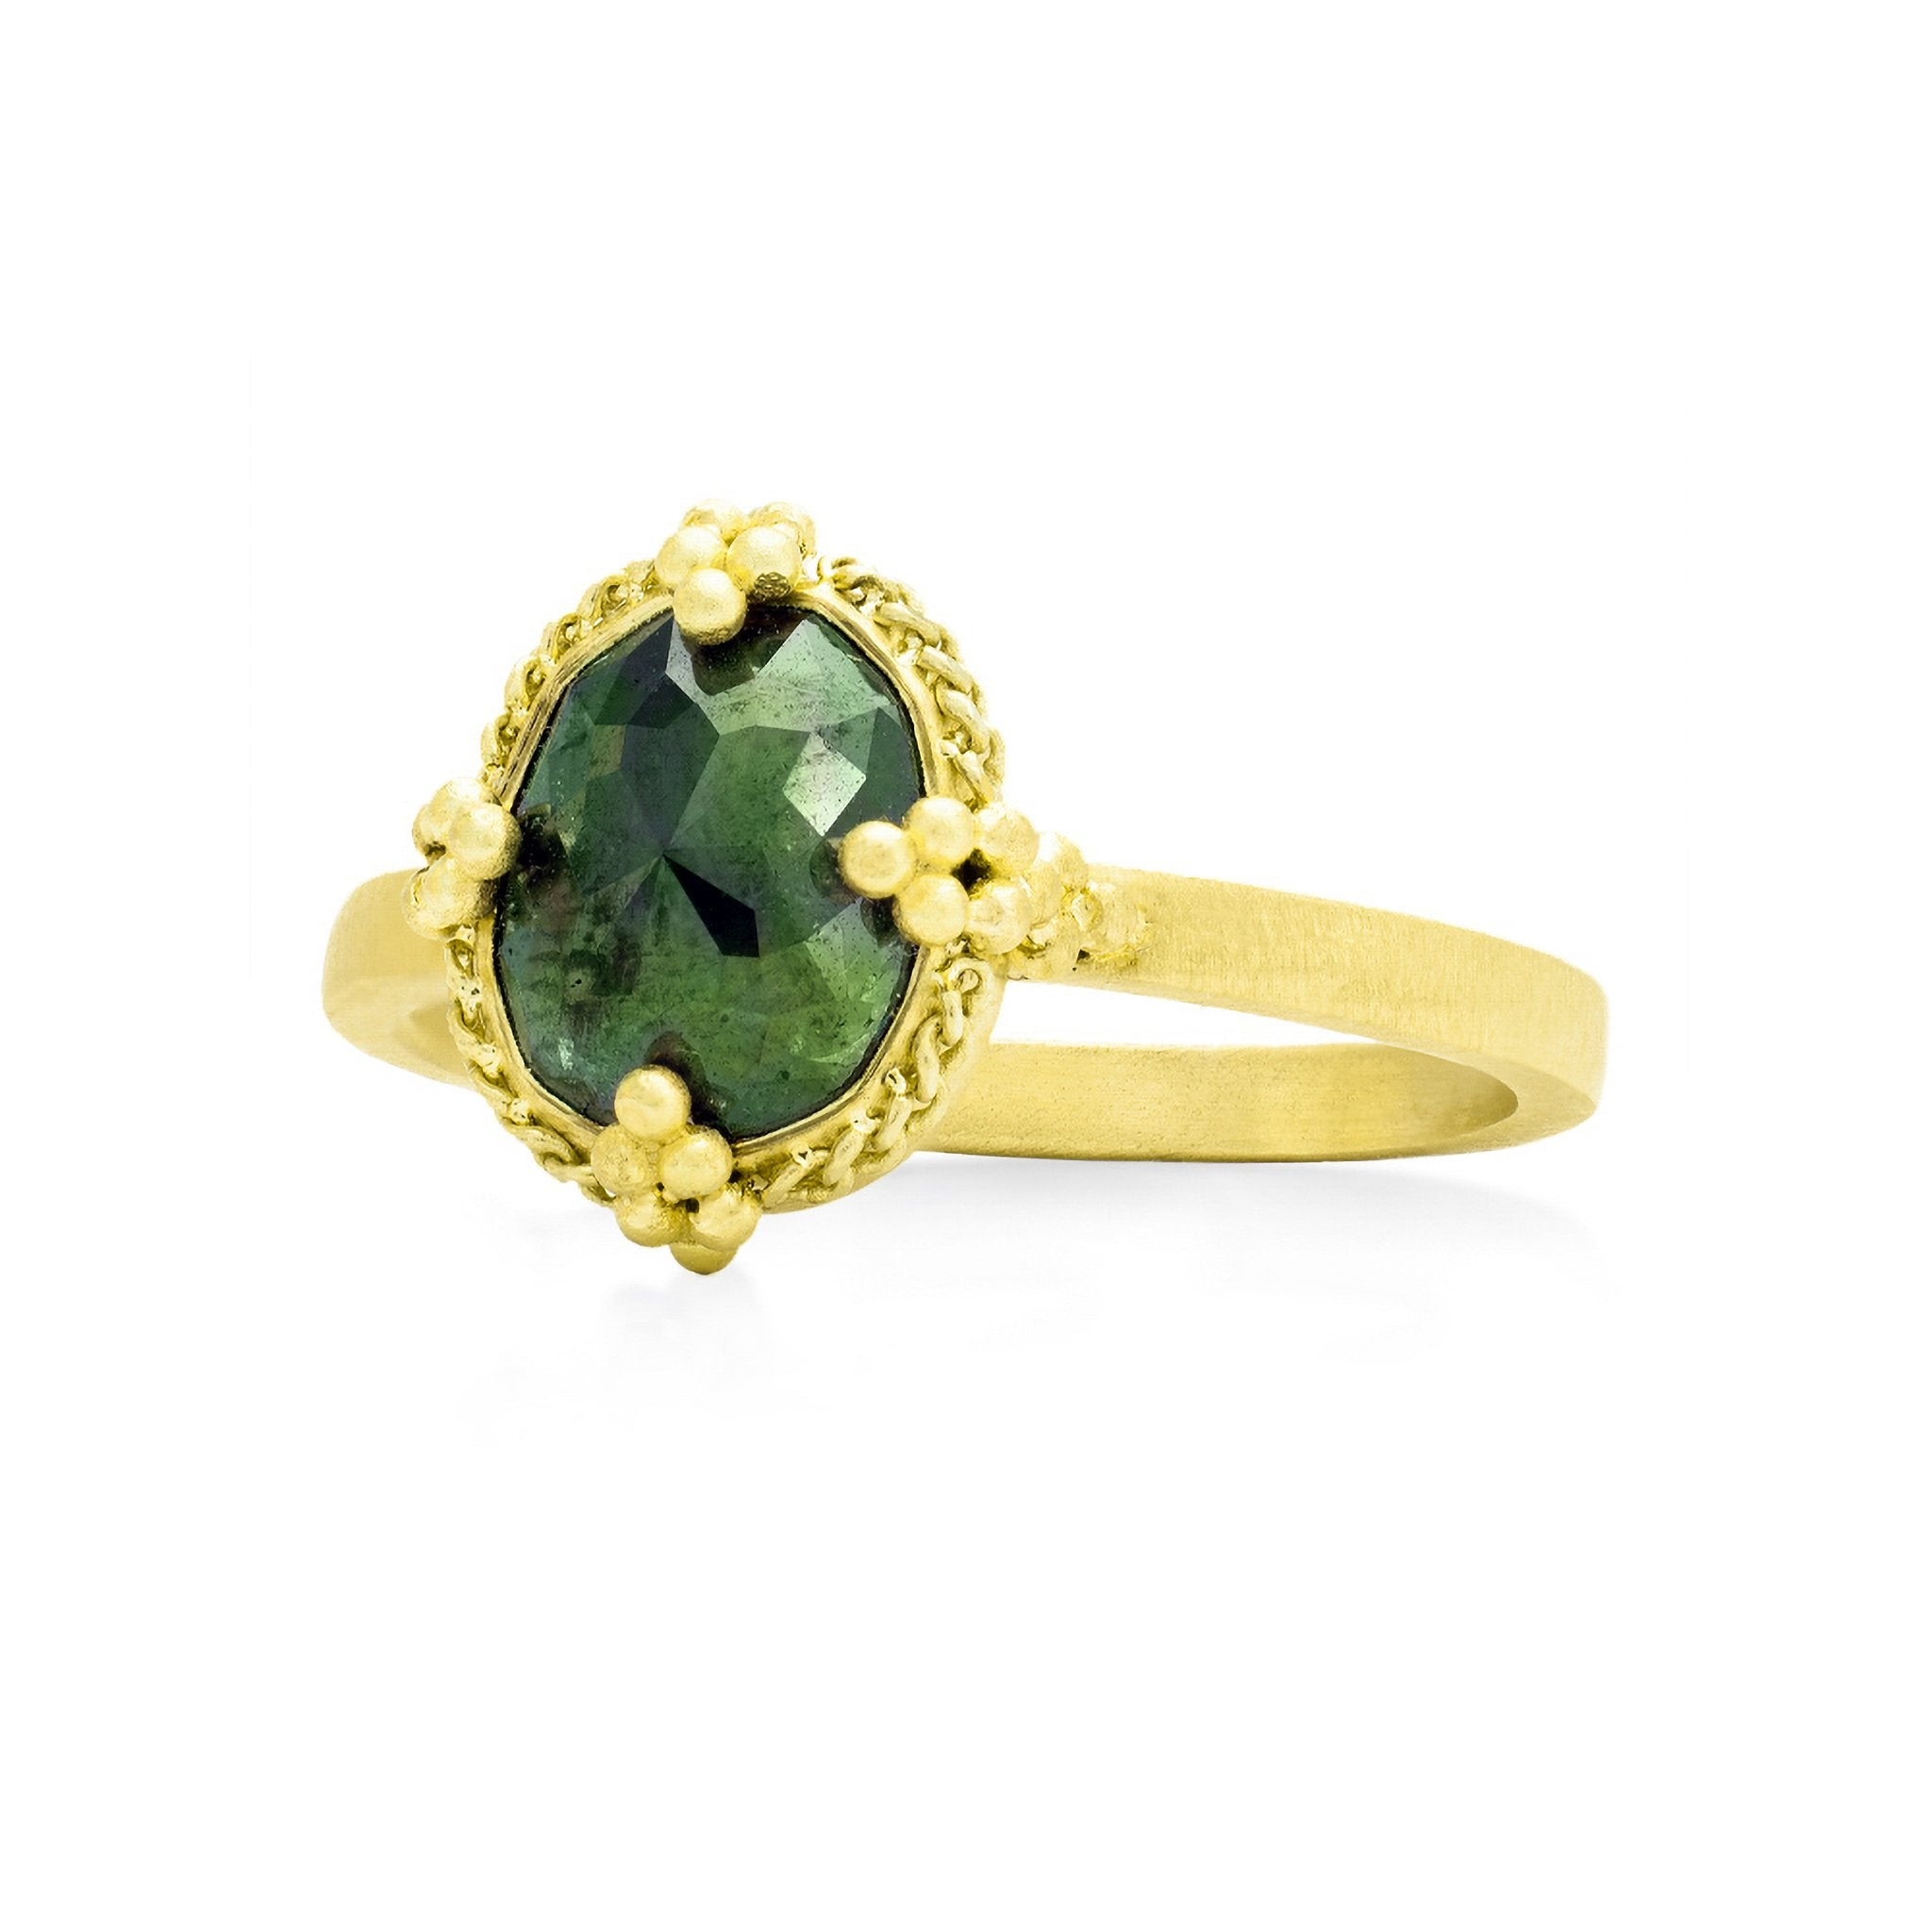 Amali-Green Diamond Ring